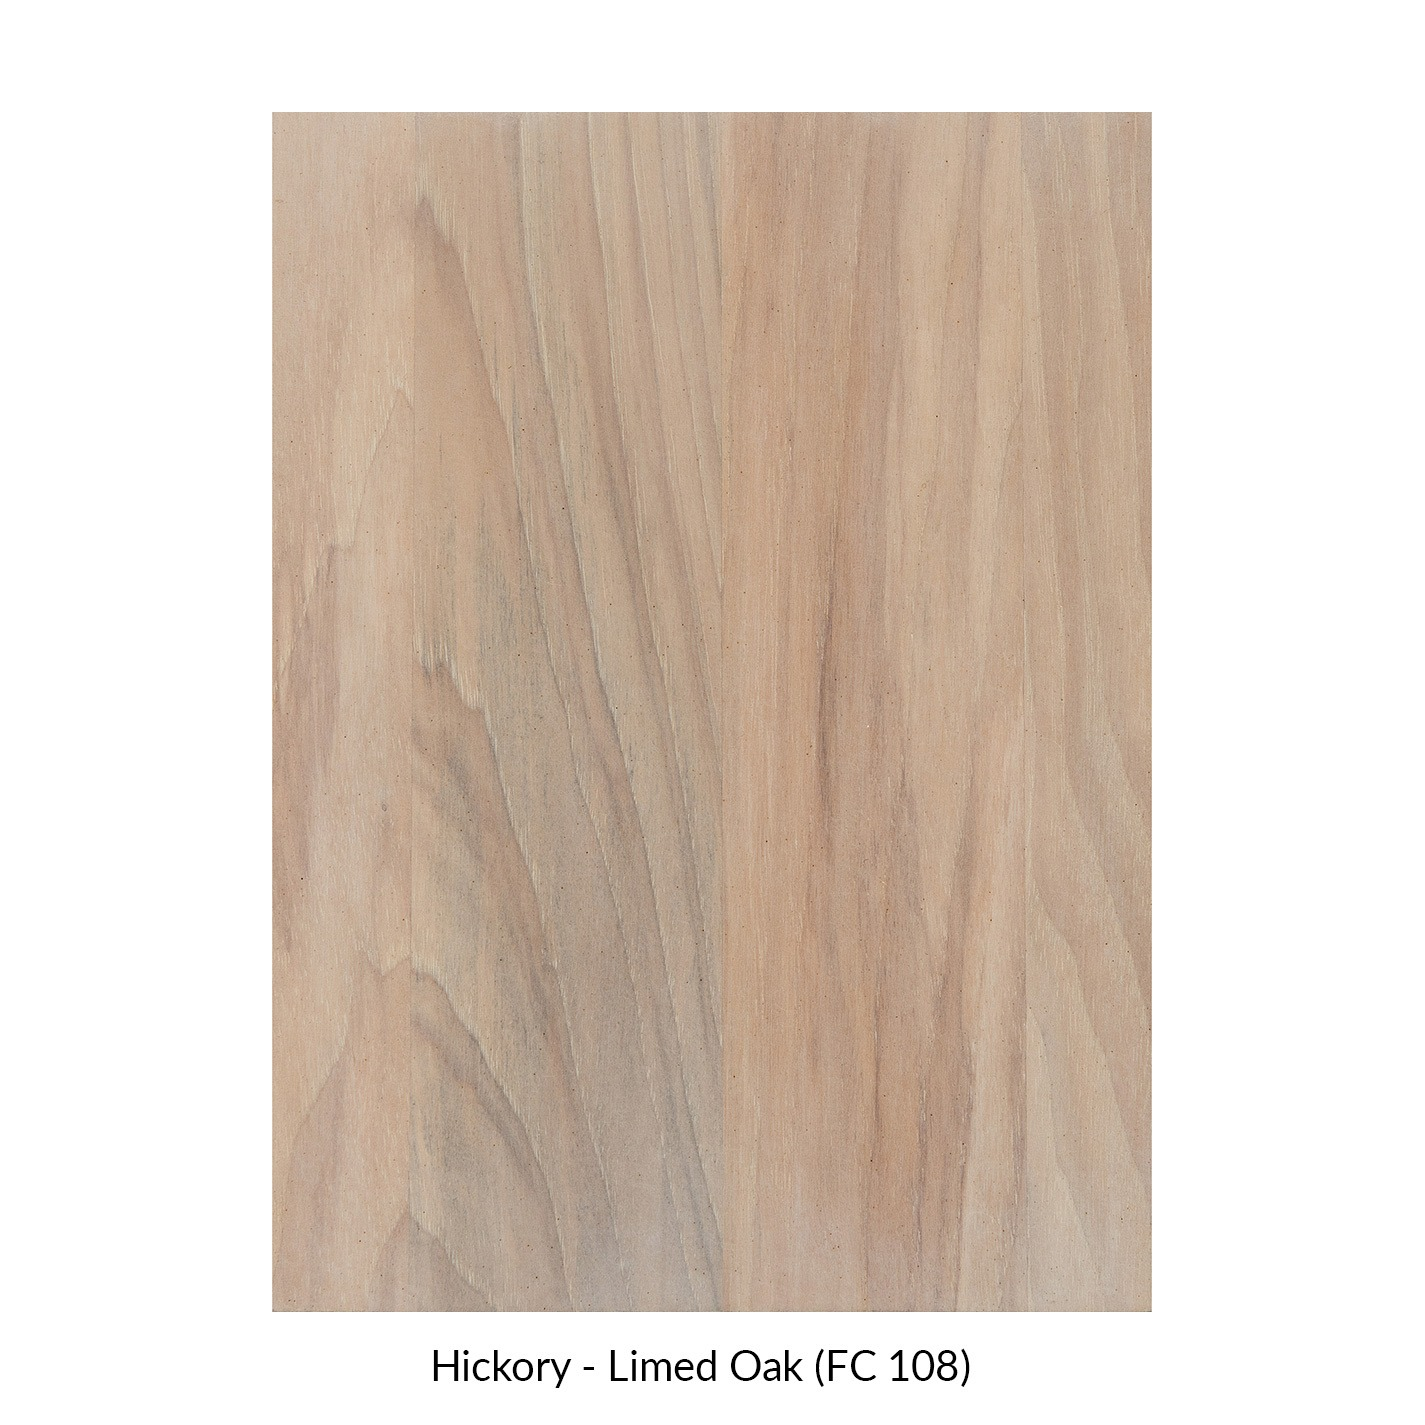 spectrum-hickory-limed-oak-fc-108.jpg